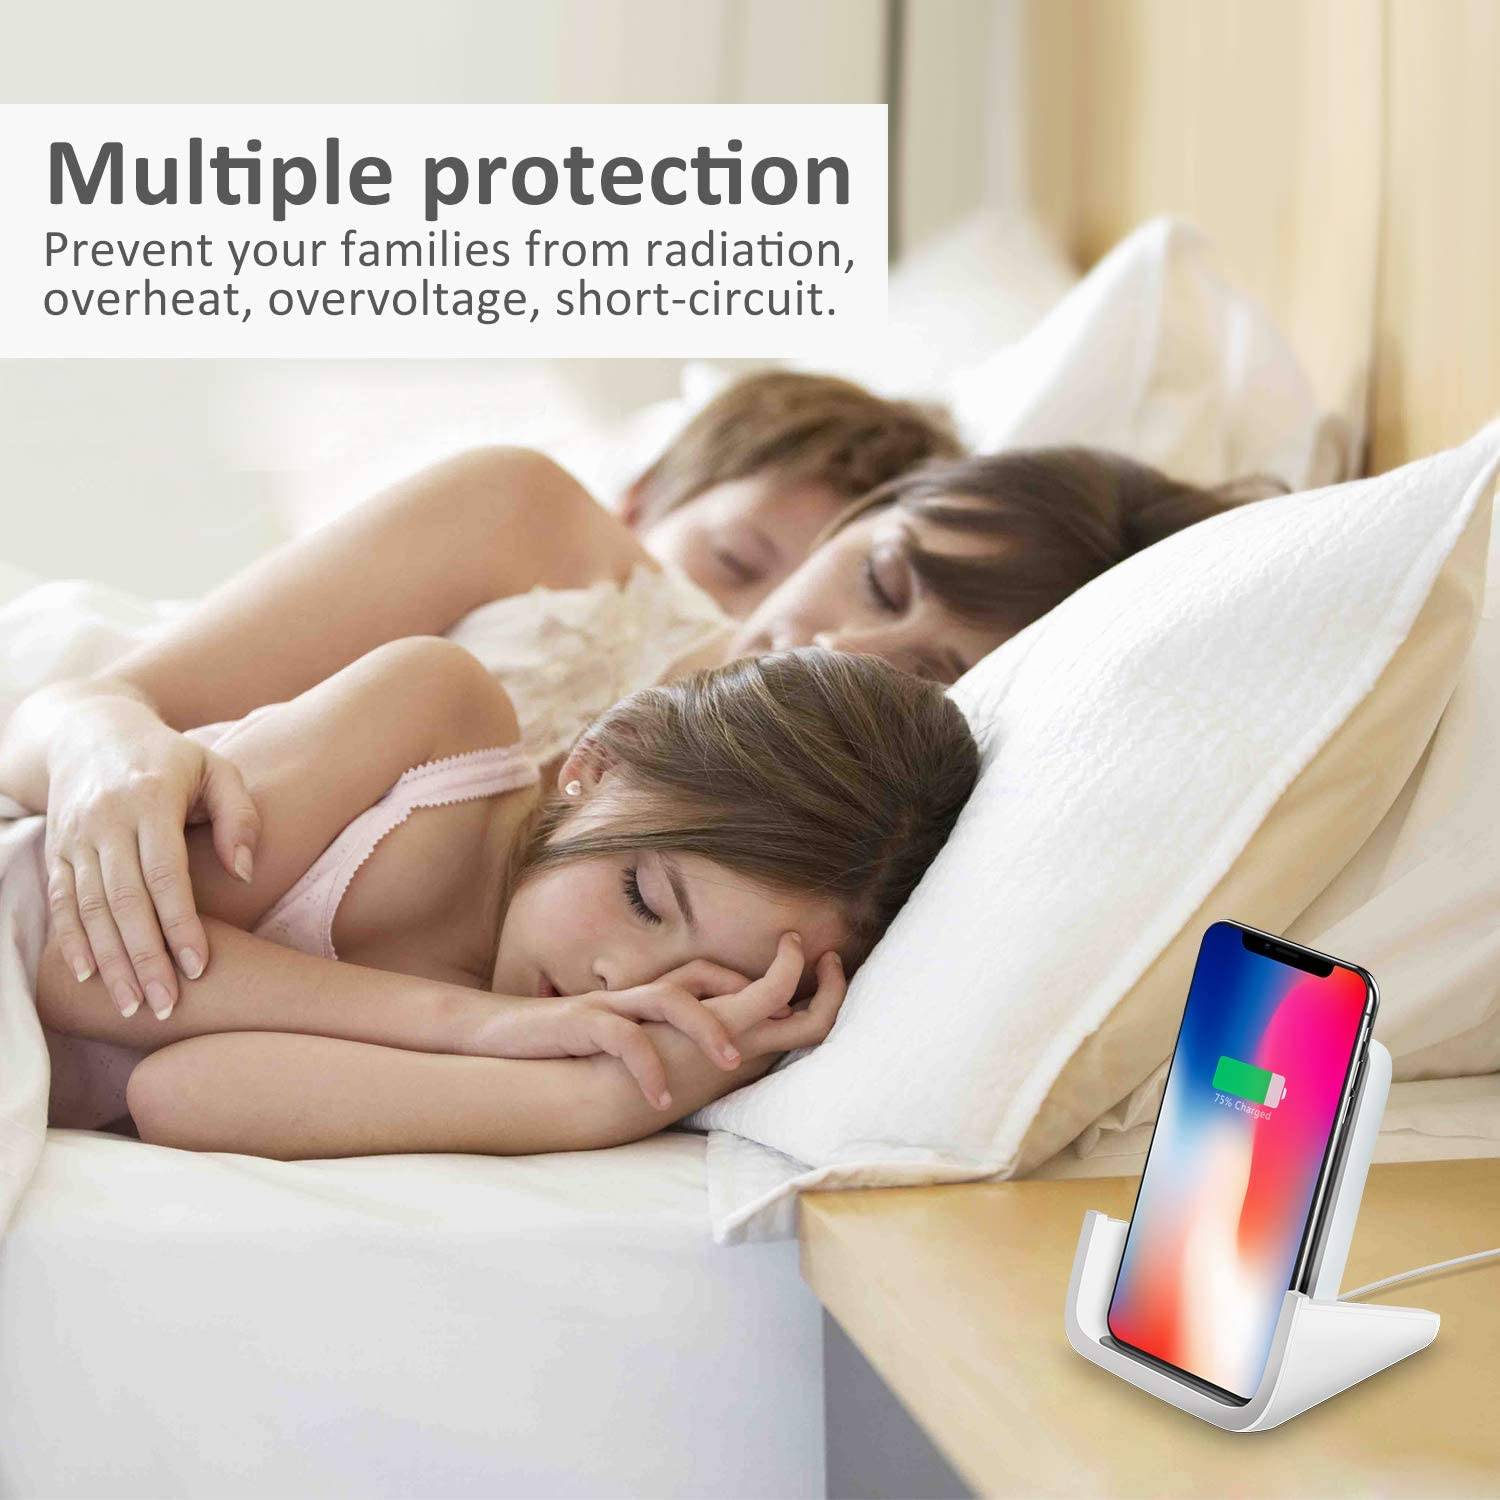 Wireless Charger YUWISS Wireless Charging Stand Cordless Charger Qi-Certified 10//7.5//5W Compatible with iPhone 11//11Pro//11Pro Max//XR//XS Max//XS//X//8//8Plus Galaxy S10//S9//S9+//S8//S8+ Note 10//9//8 White